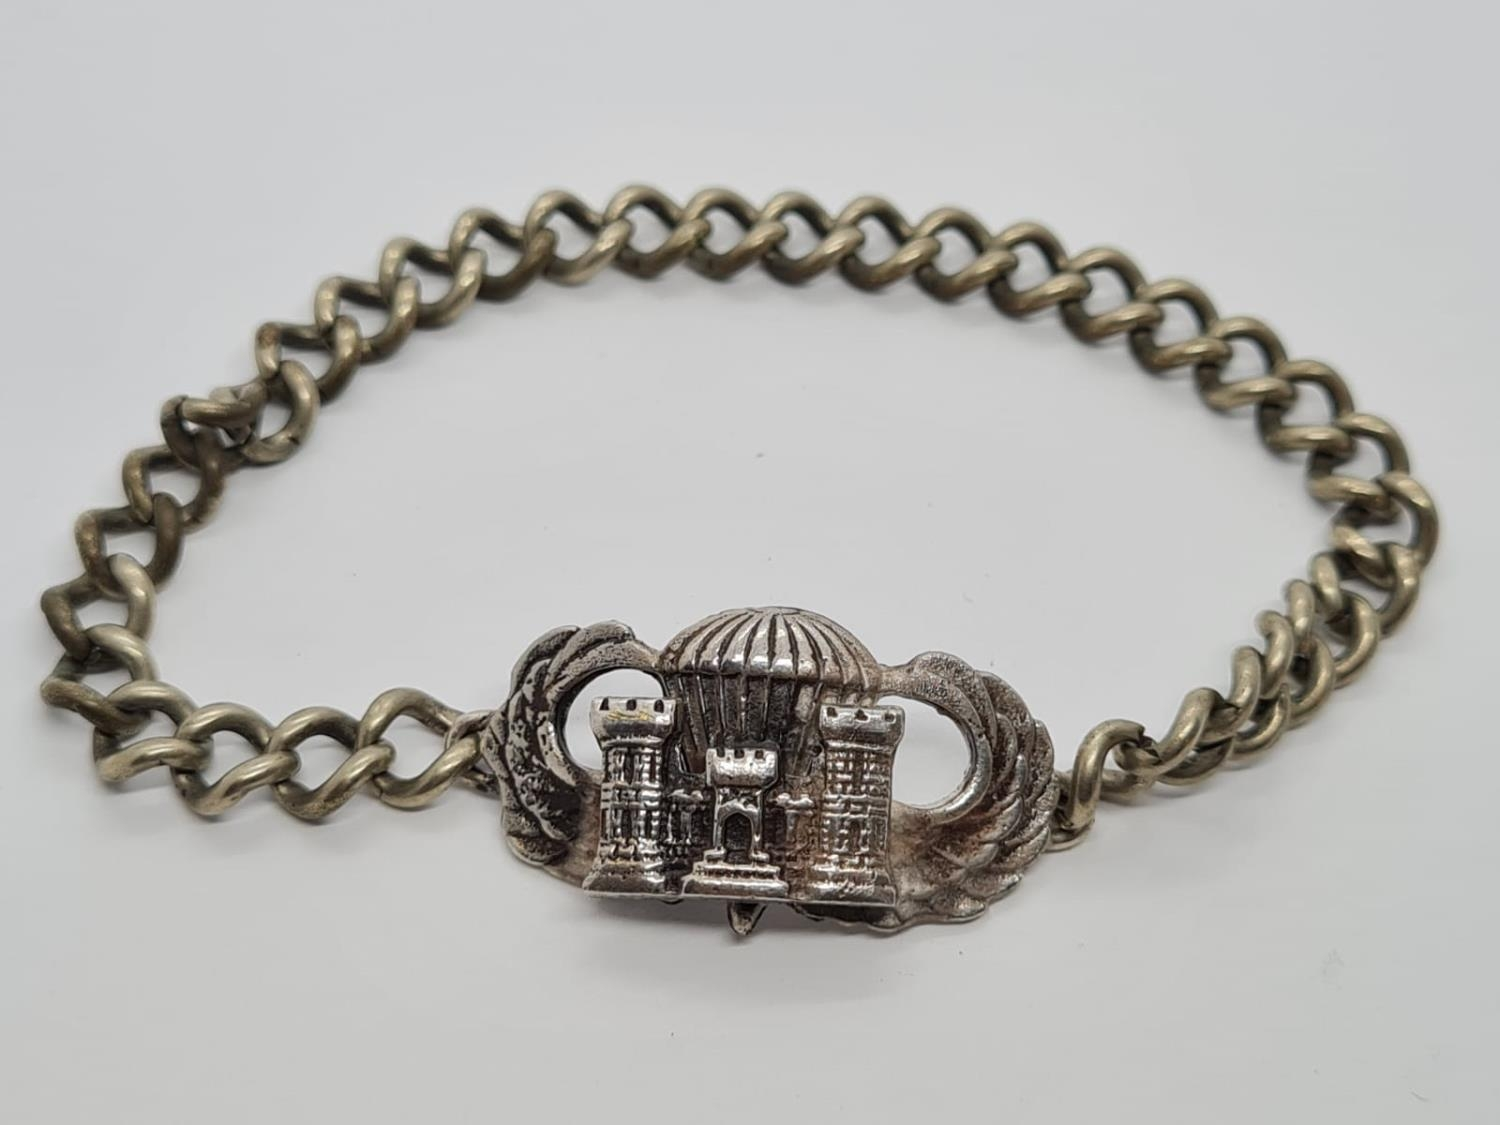 WW2 Solid Silver US Airborne Recon Jump Wings on a silver-plated wrist chain.